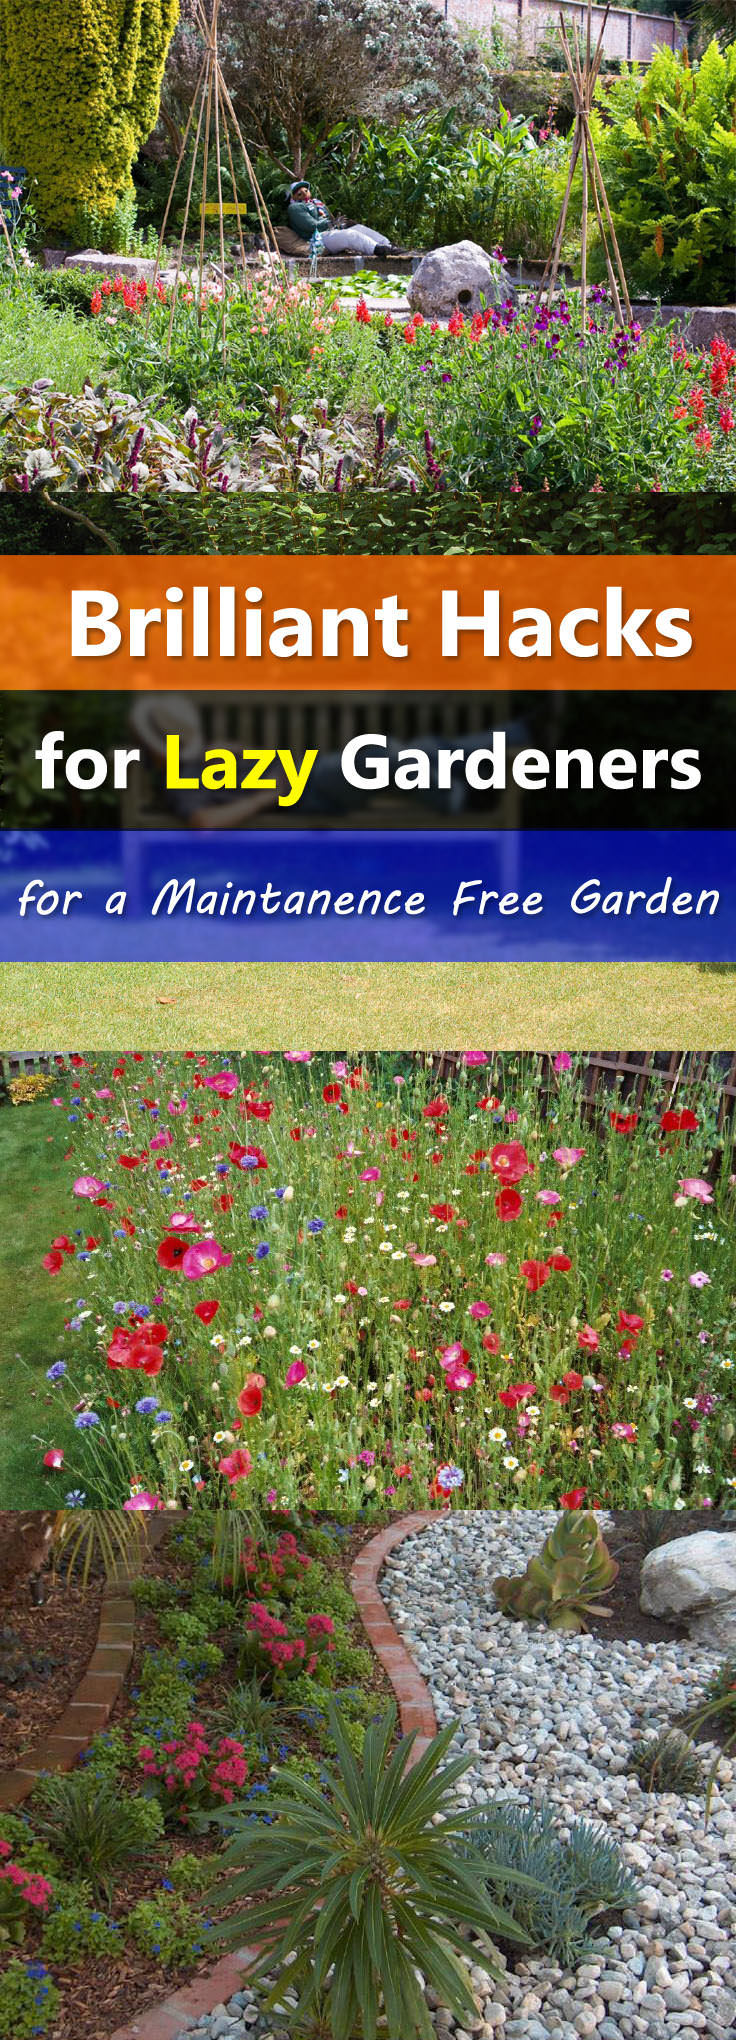 Easy Landscaping Tips for a Low Maintenance Garden ... on Low Maintenance Backyard Design  id=80625